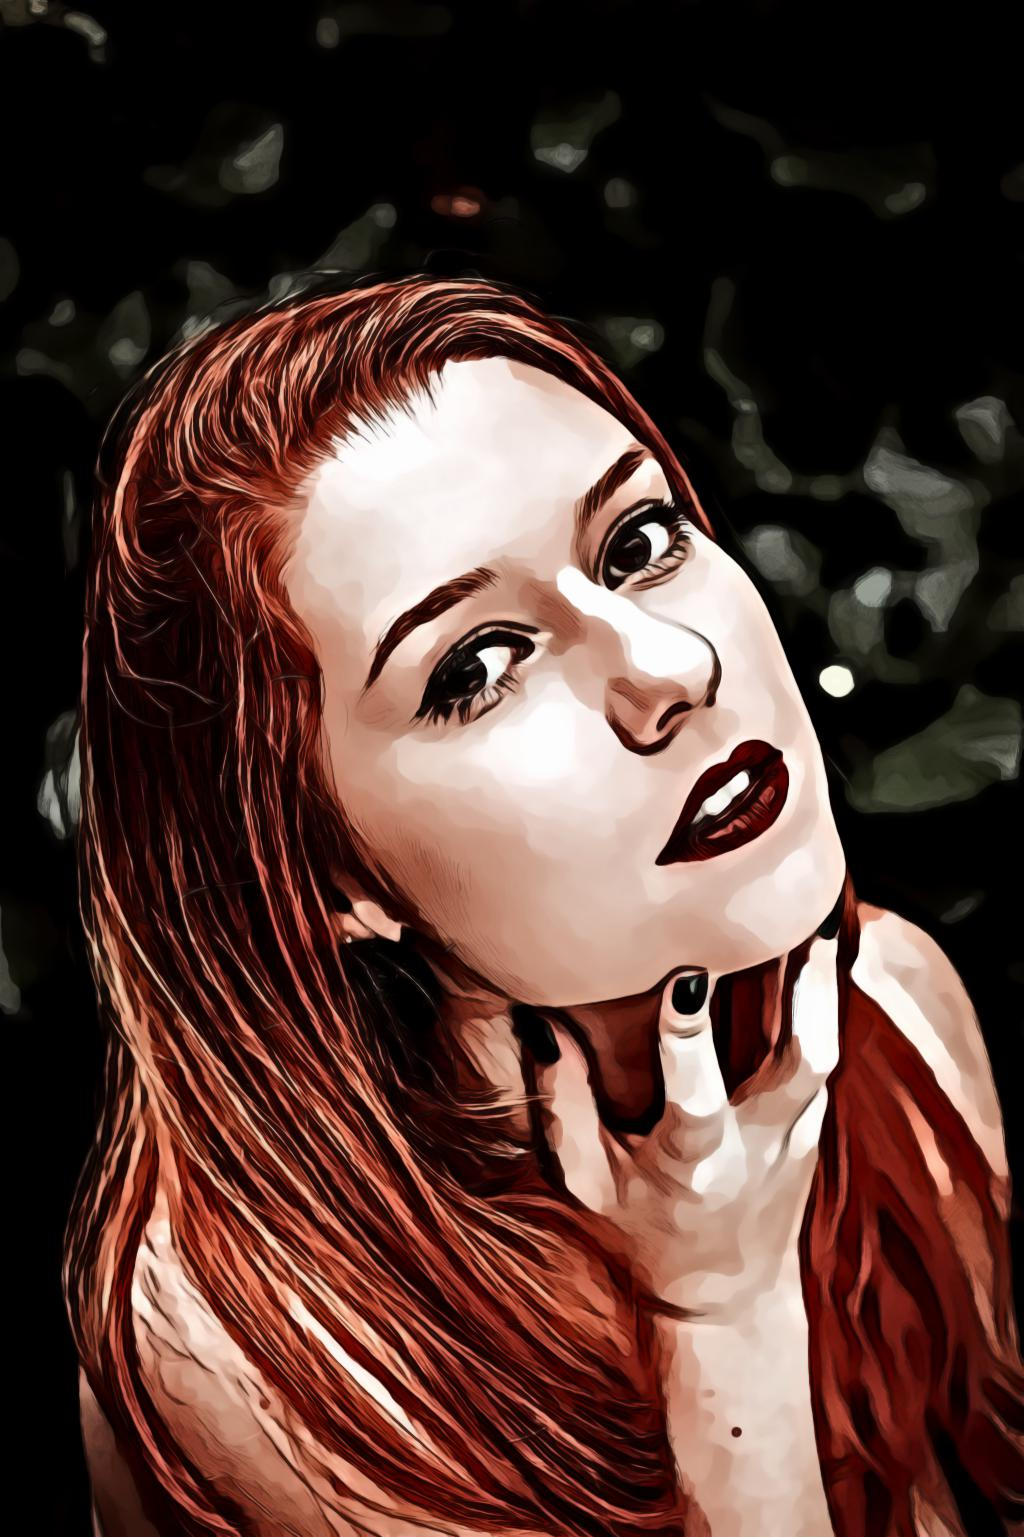 Redhead woman holding her chin